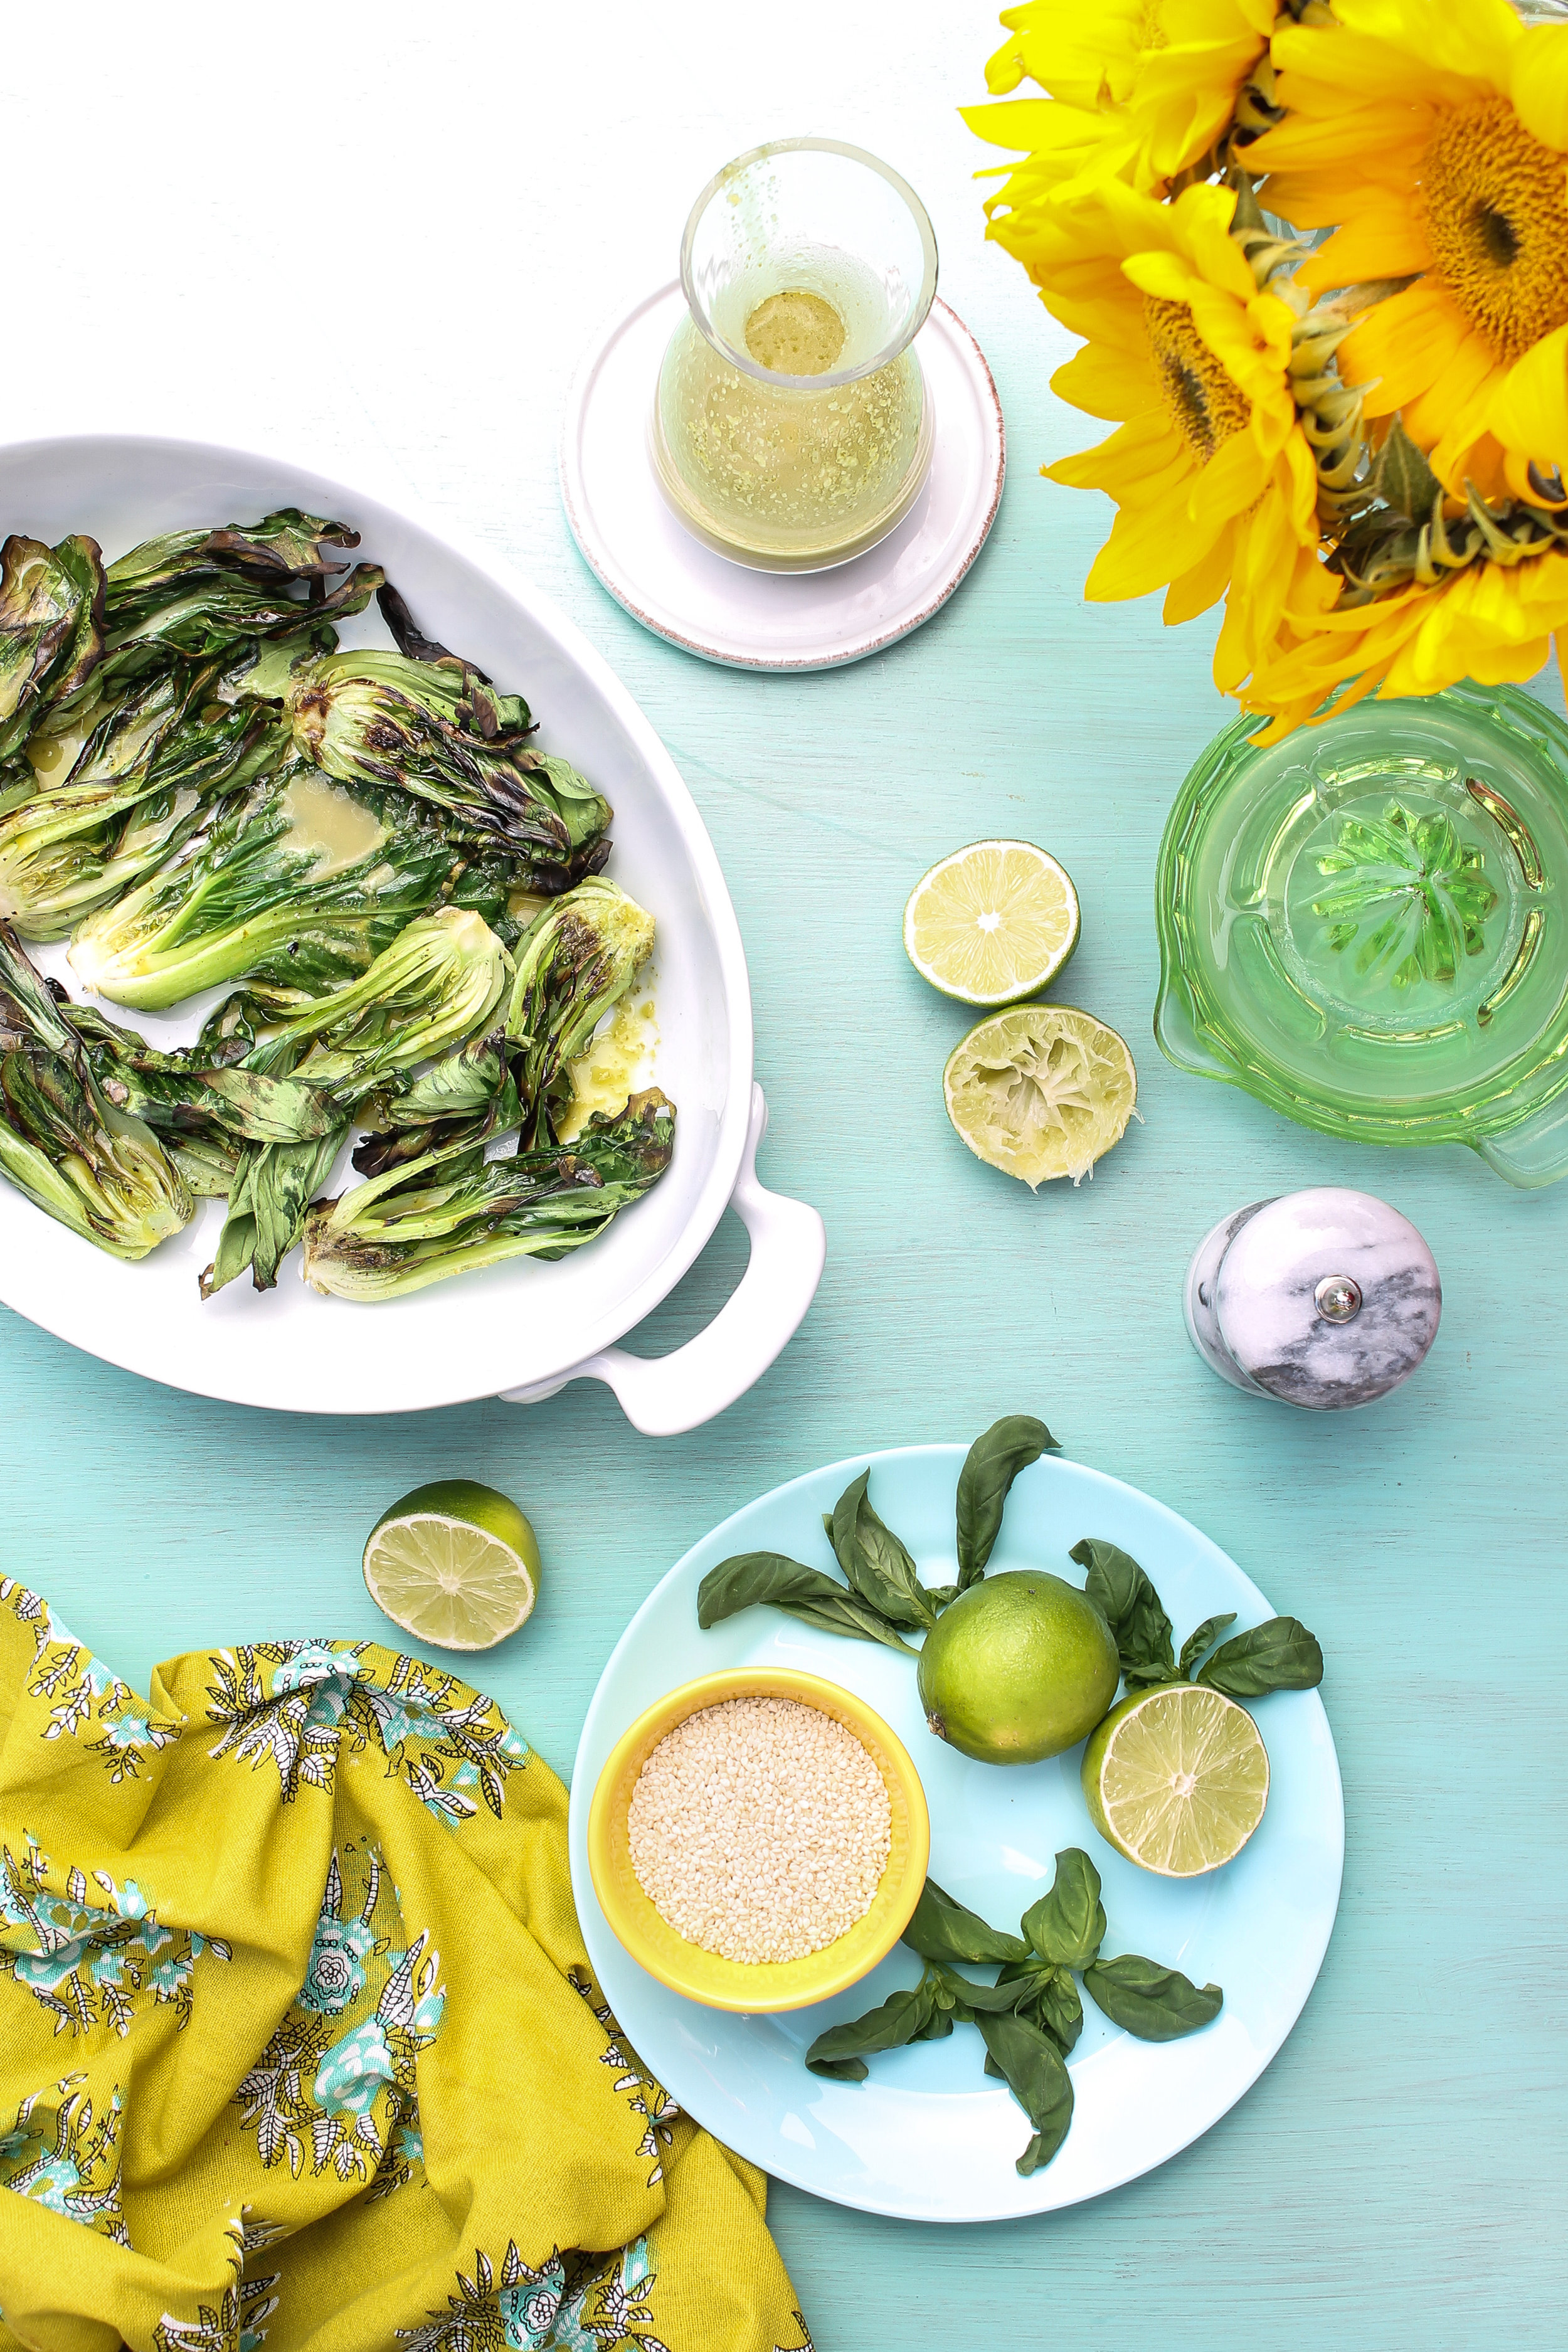 THIS SUPER EASY GRILLED BOK CHOY WITH BASIL-LIME VINAIGRETTE MAKES THE PERFECT SUMMER SIDE DISH!  Find this recipe and many more on WWW.PEDANTICFOODIE.COM.